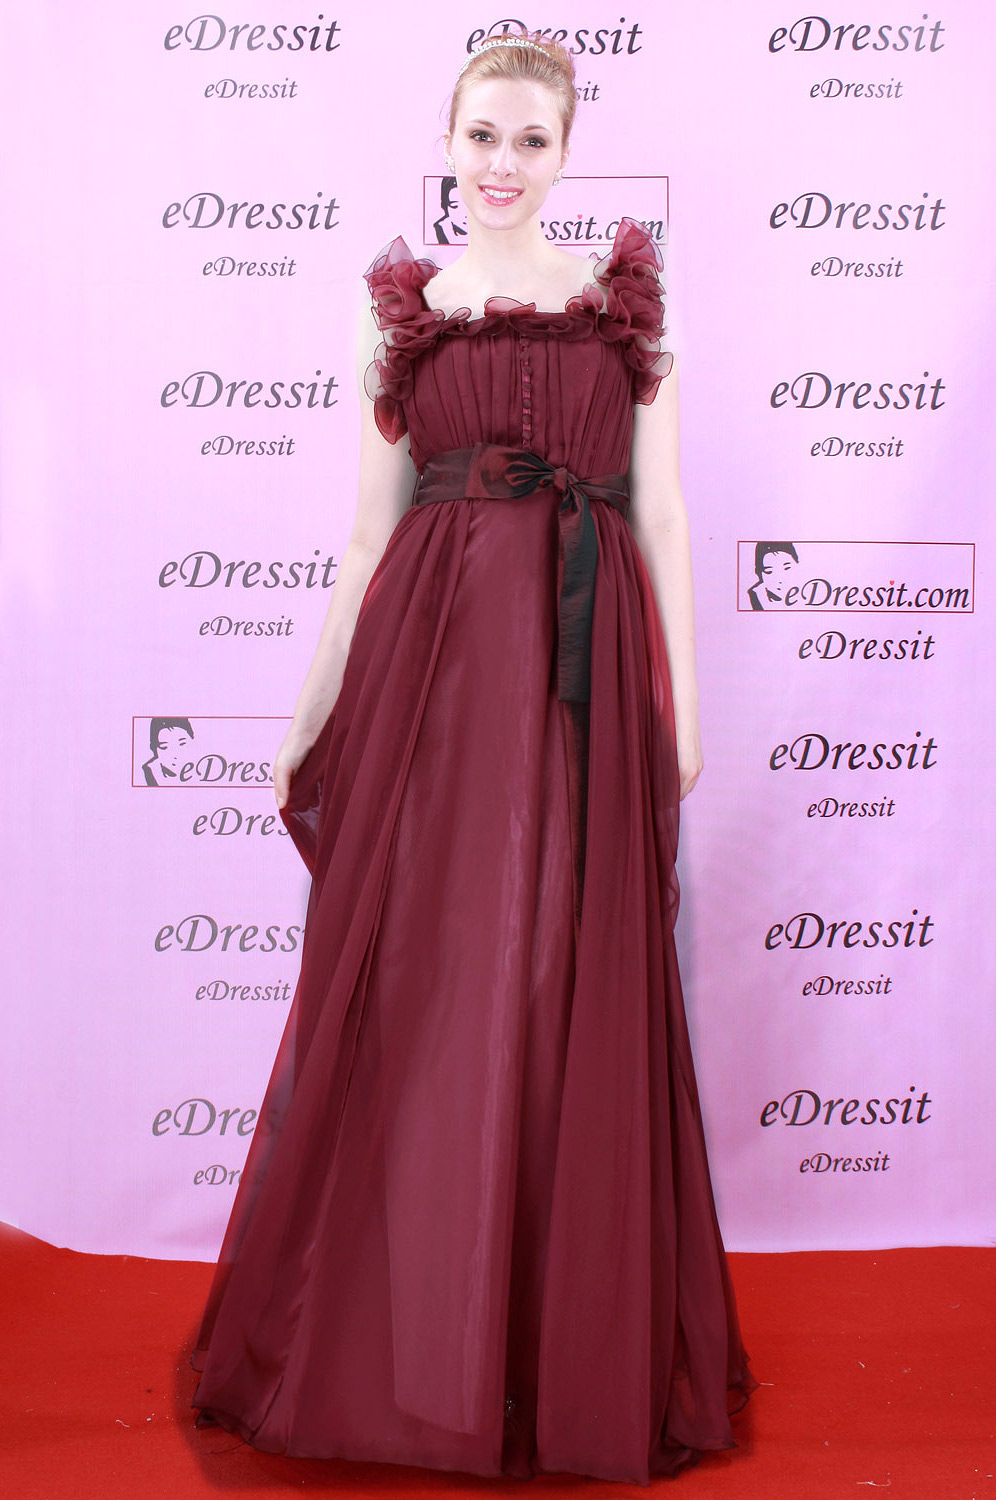 eDresssit burgundy Prom/Ball/Gown/Evening dress (00081017)